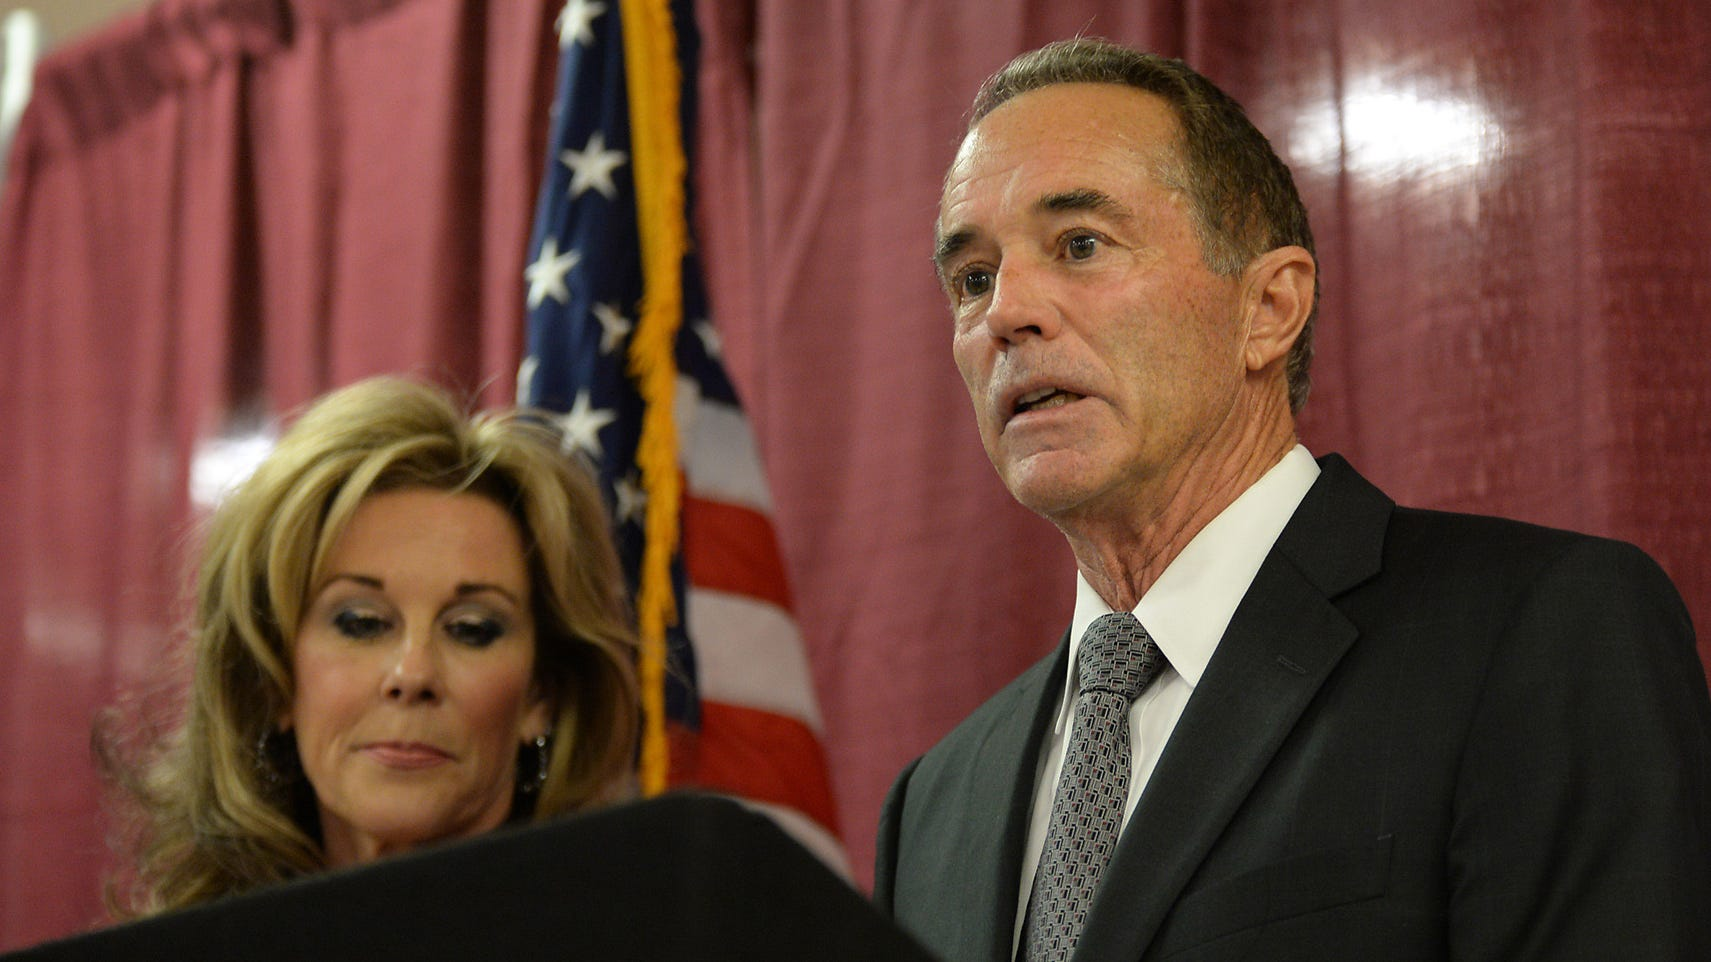 U.S. Rep. Chris Collins, R-N.Y., will remain on the November ballot despite being indicted in August 2018 on federal insider-trading charges. Here, Collins, with his wife, Mary, held a news conference in response to his arrest for insider trading on Aug. 8, 2018, in Buffalo, New York.